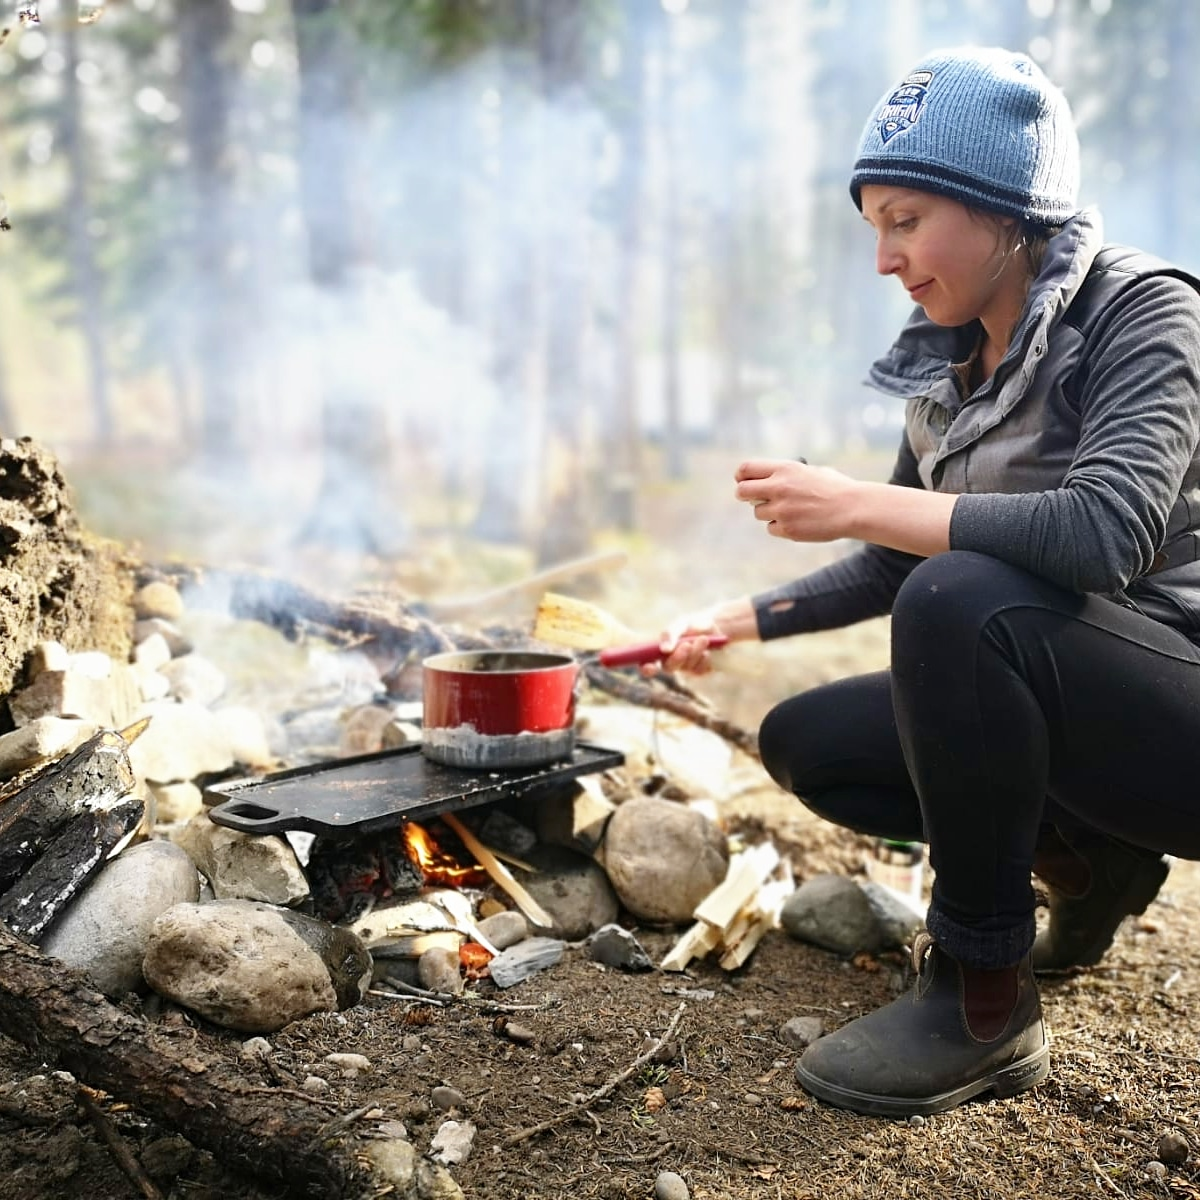 5 tips for zero waste camping this summer